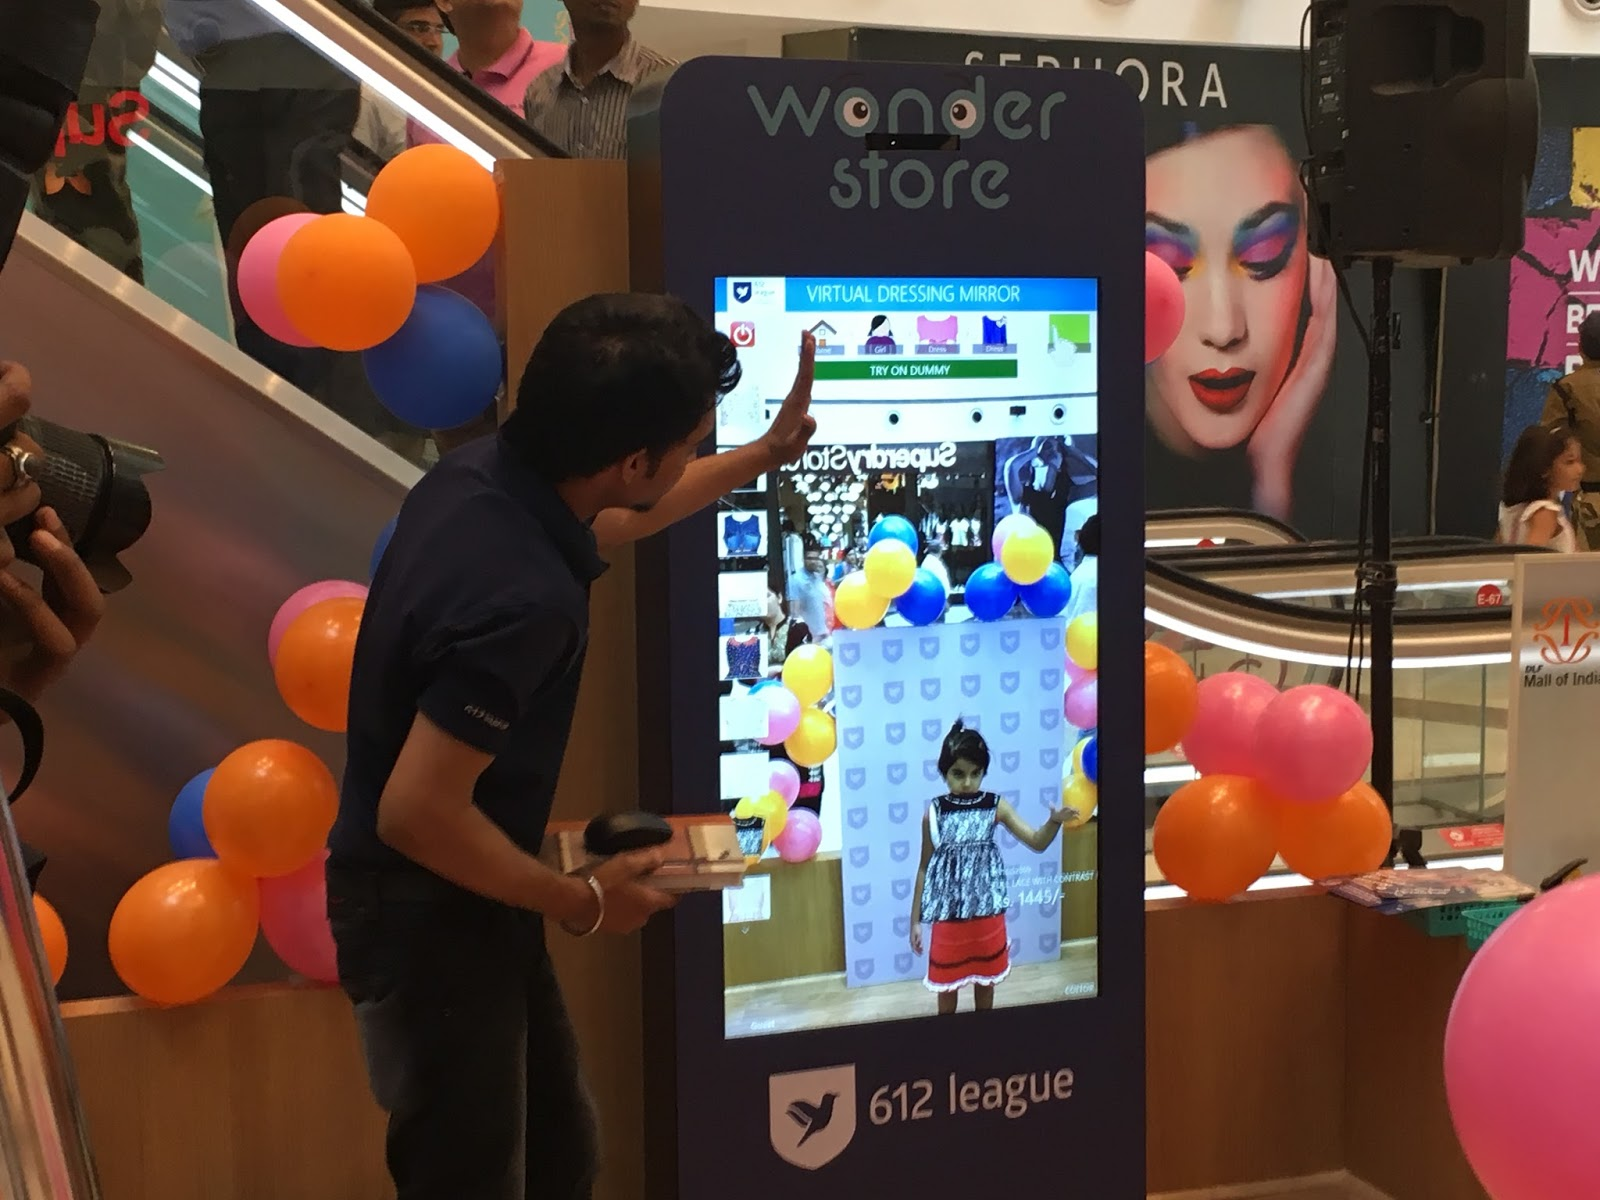 League Wonder Store Augmented Reality